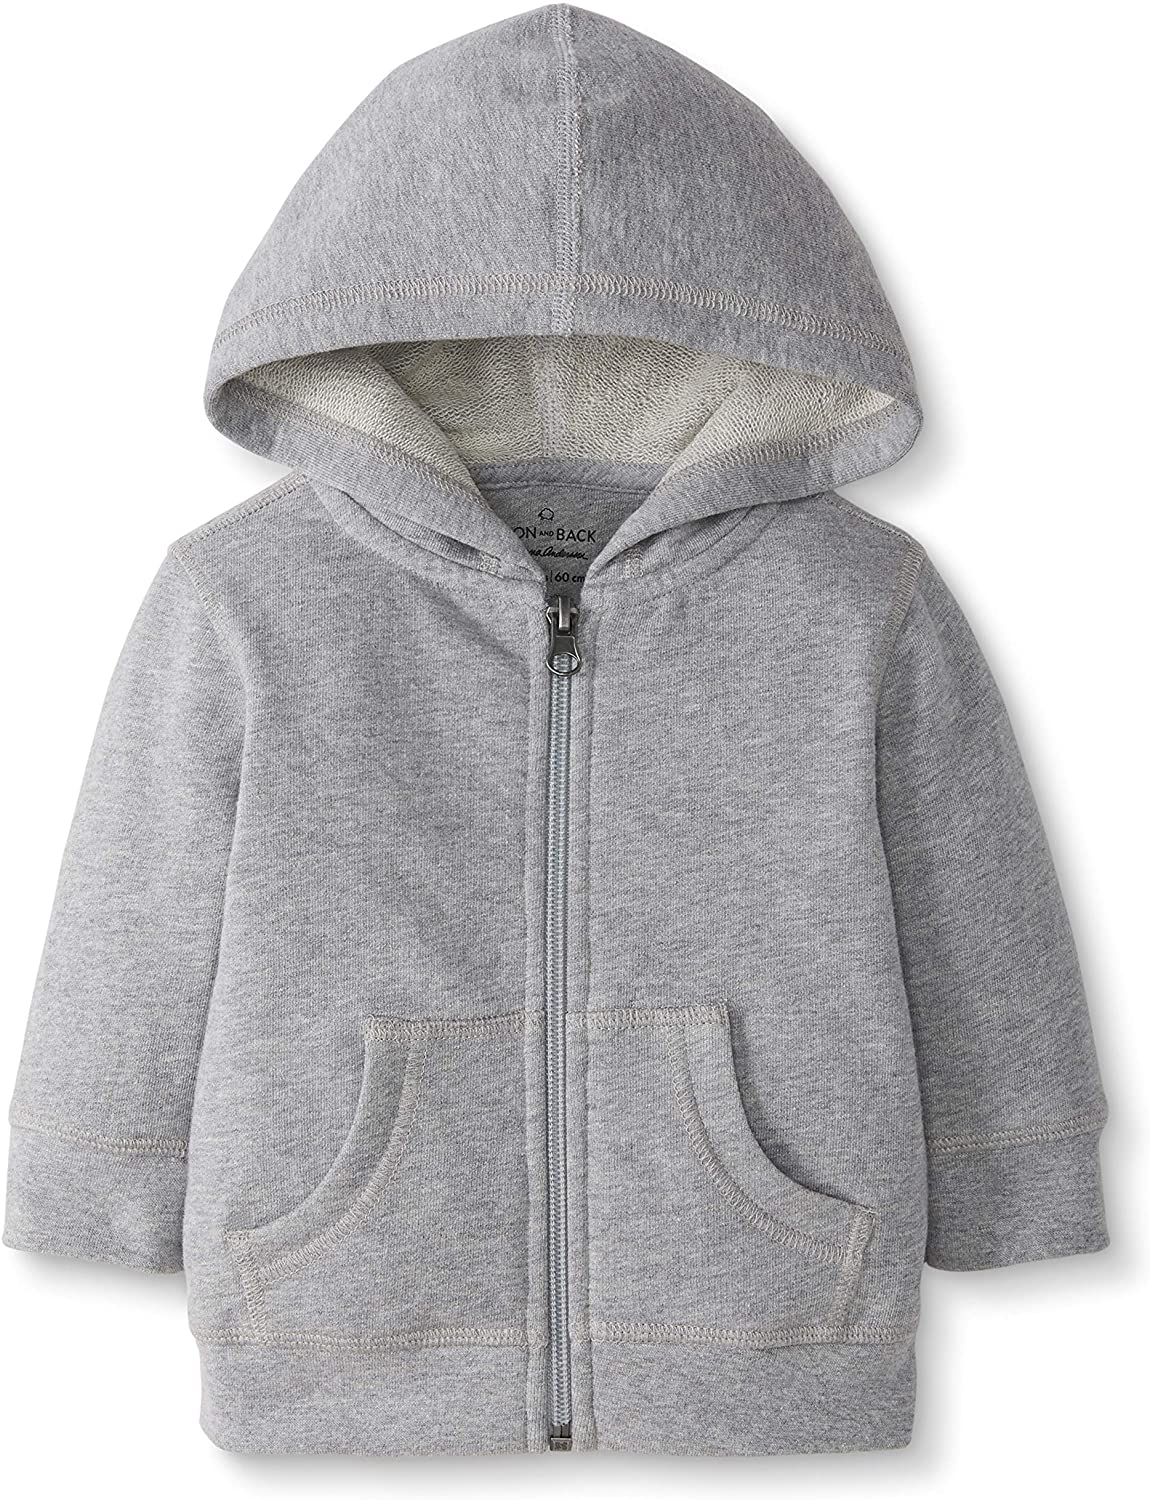 Moon and Back by Hanna Andersson Girls' Hooded Sweatshirt: Clothing